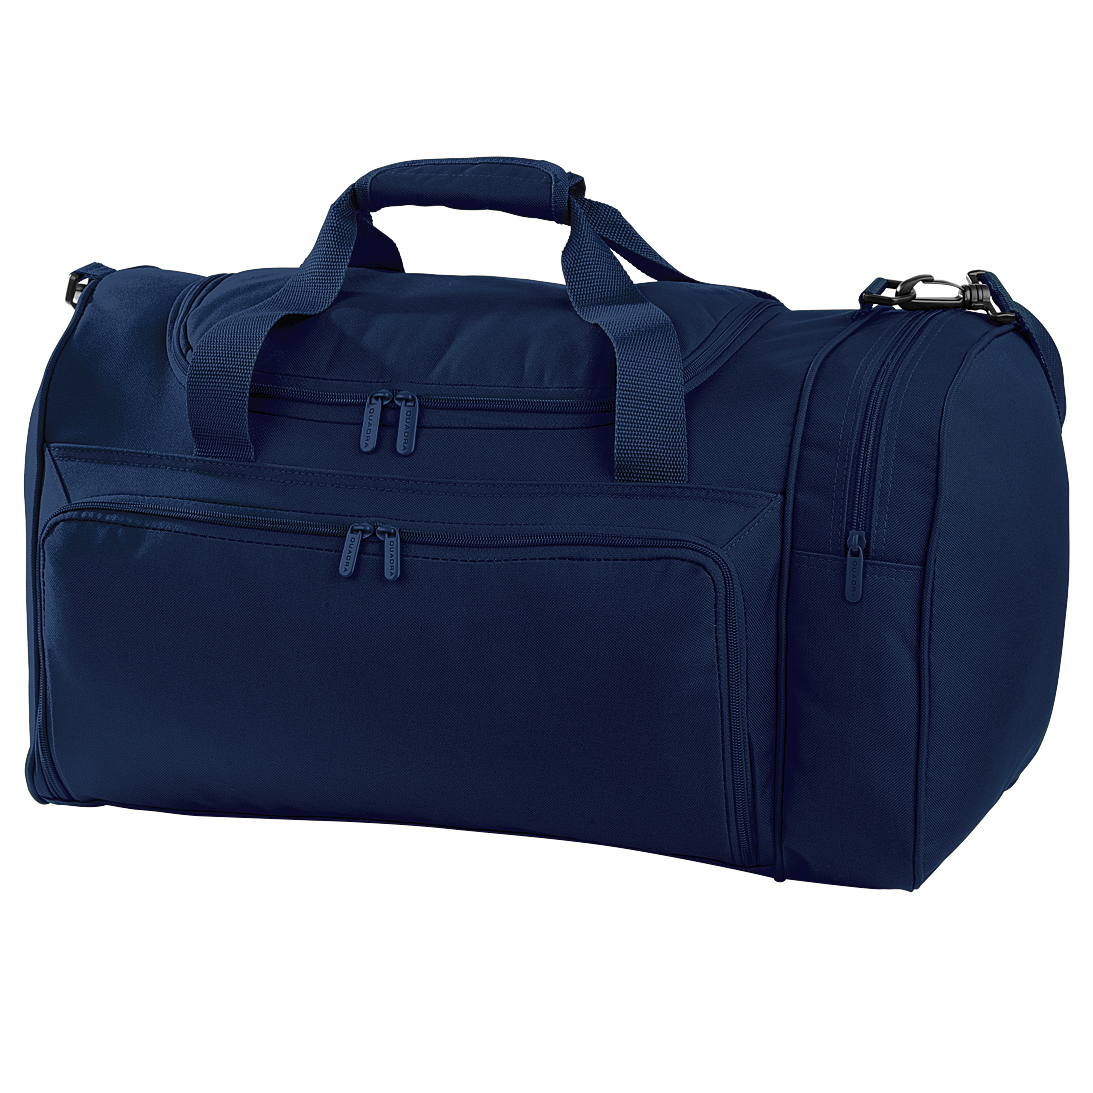 Quadra Universal Holdall Duffle Bag - 35 Litres (Pack of 2) (One Size) (French Navy)